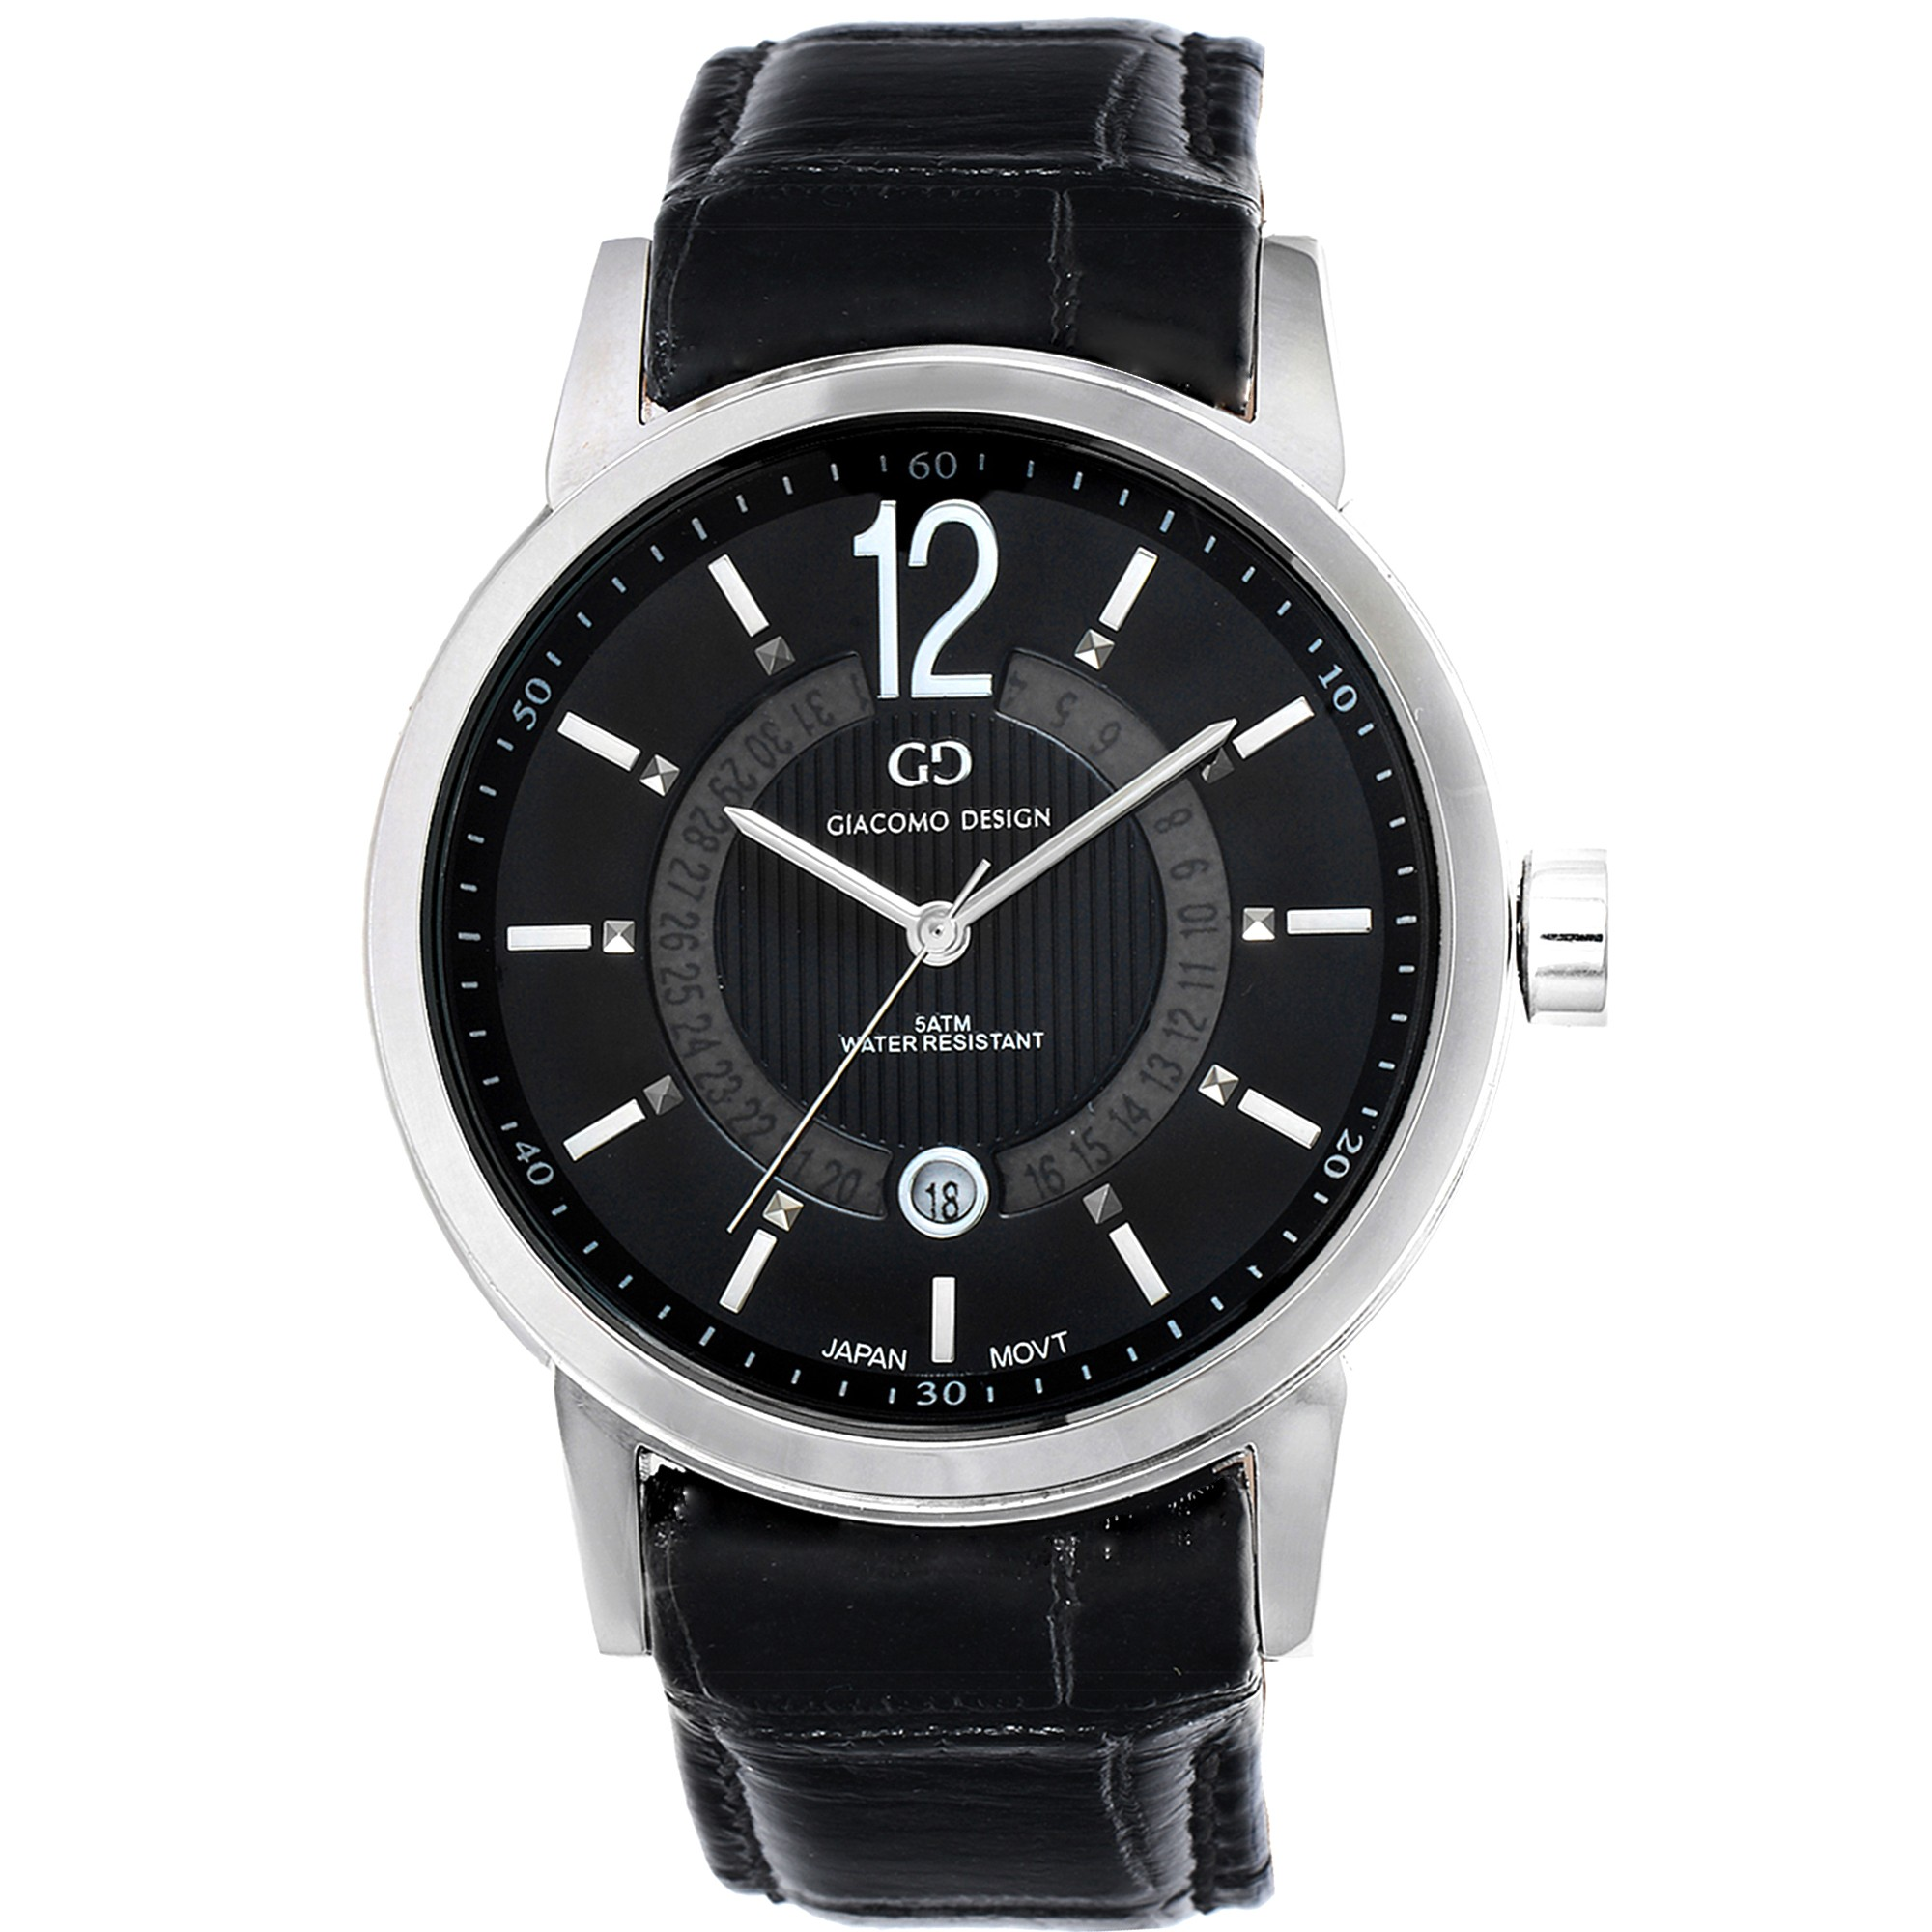 men to minimalist a starting fashionable at looking watches t cost sharp classic and leather fashion doesn s black pin fortune clothes have mens jointhemvmt